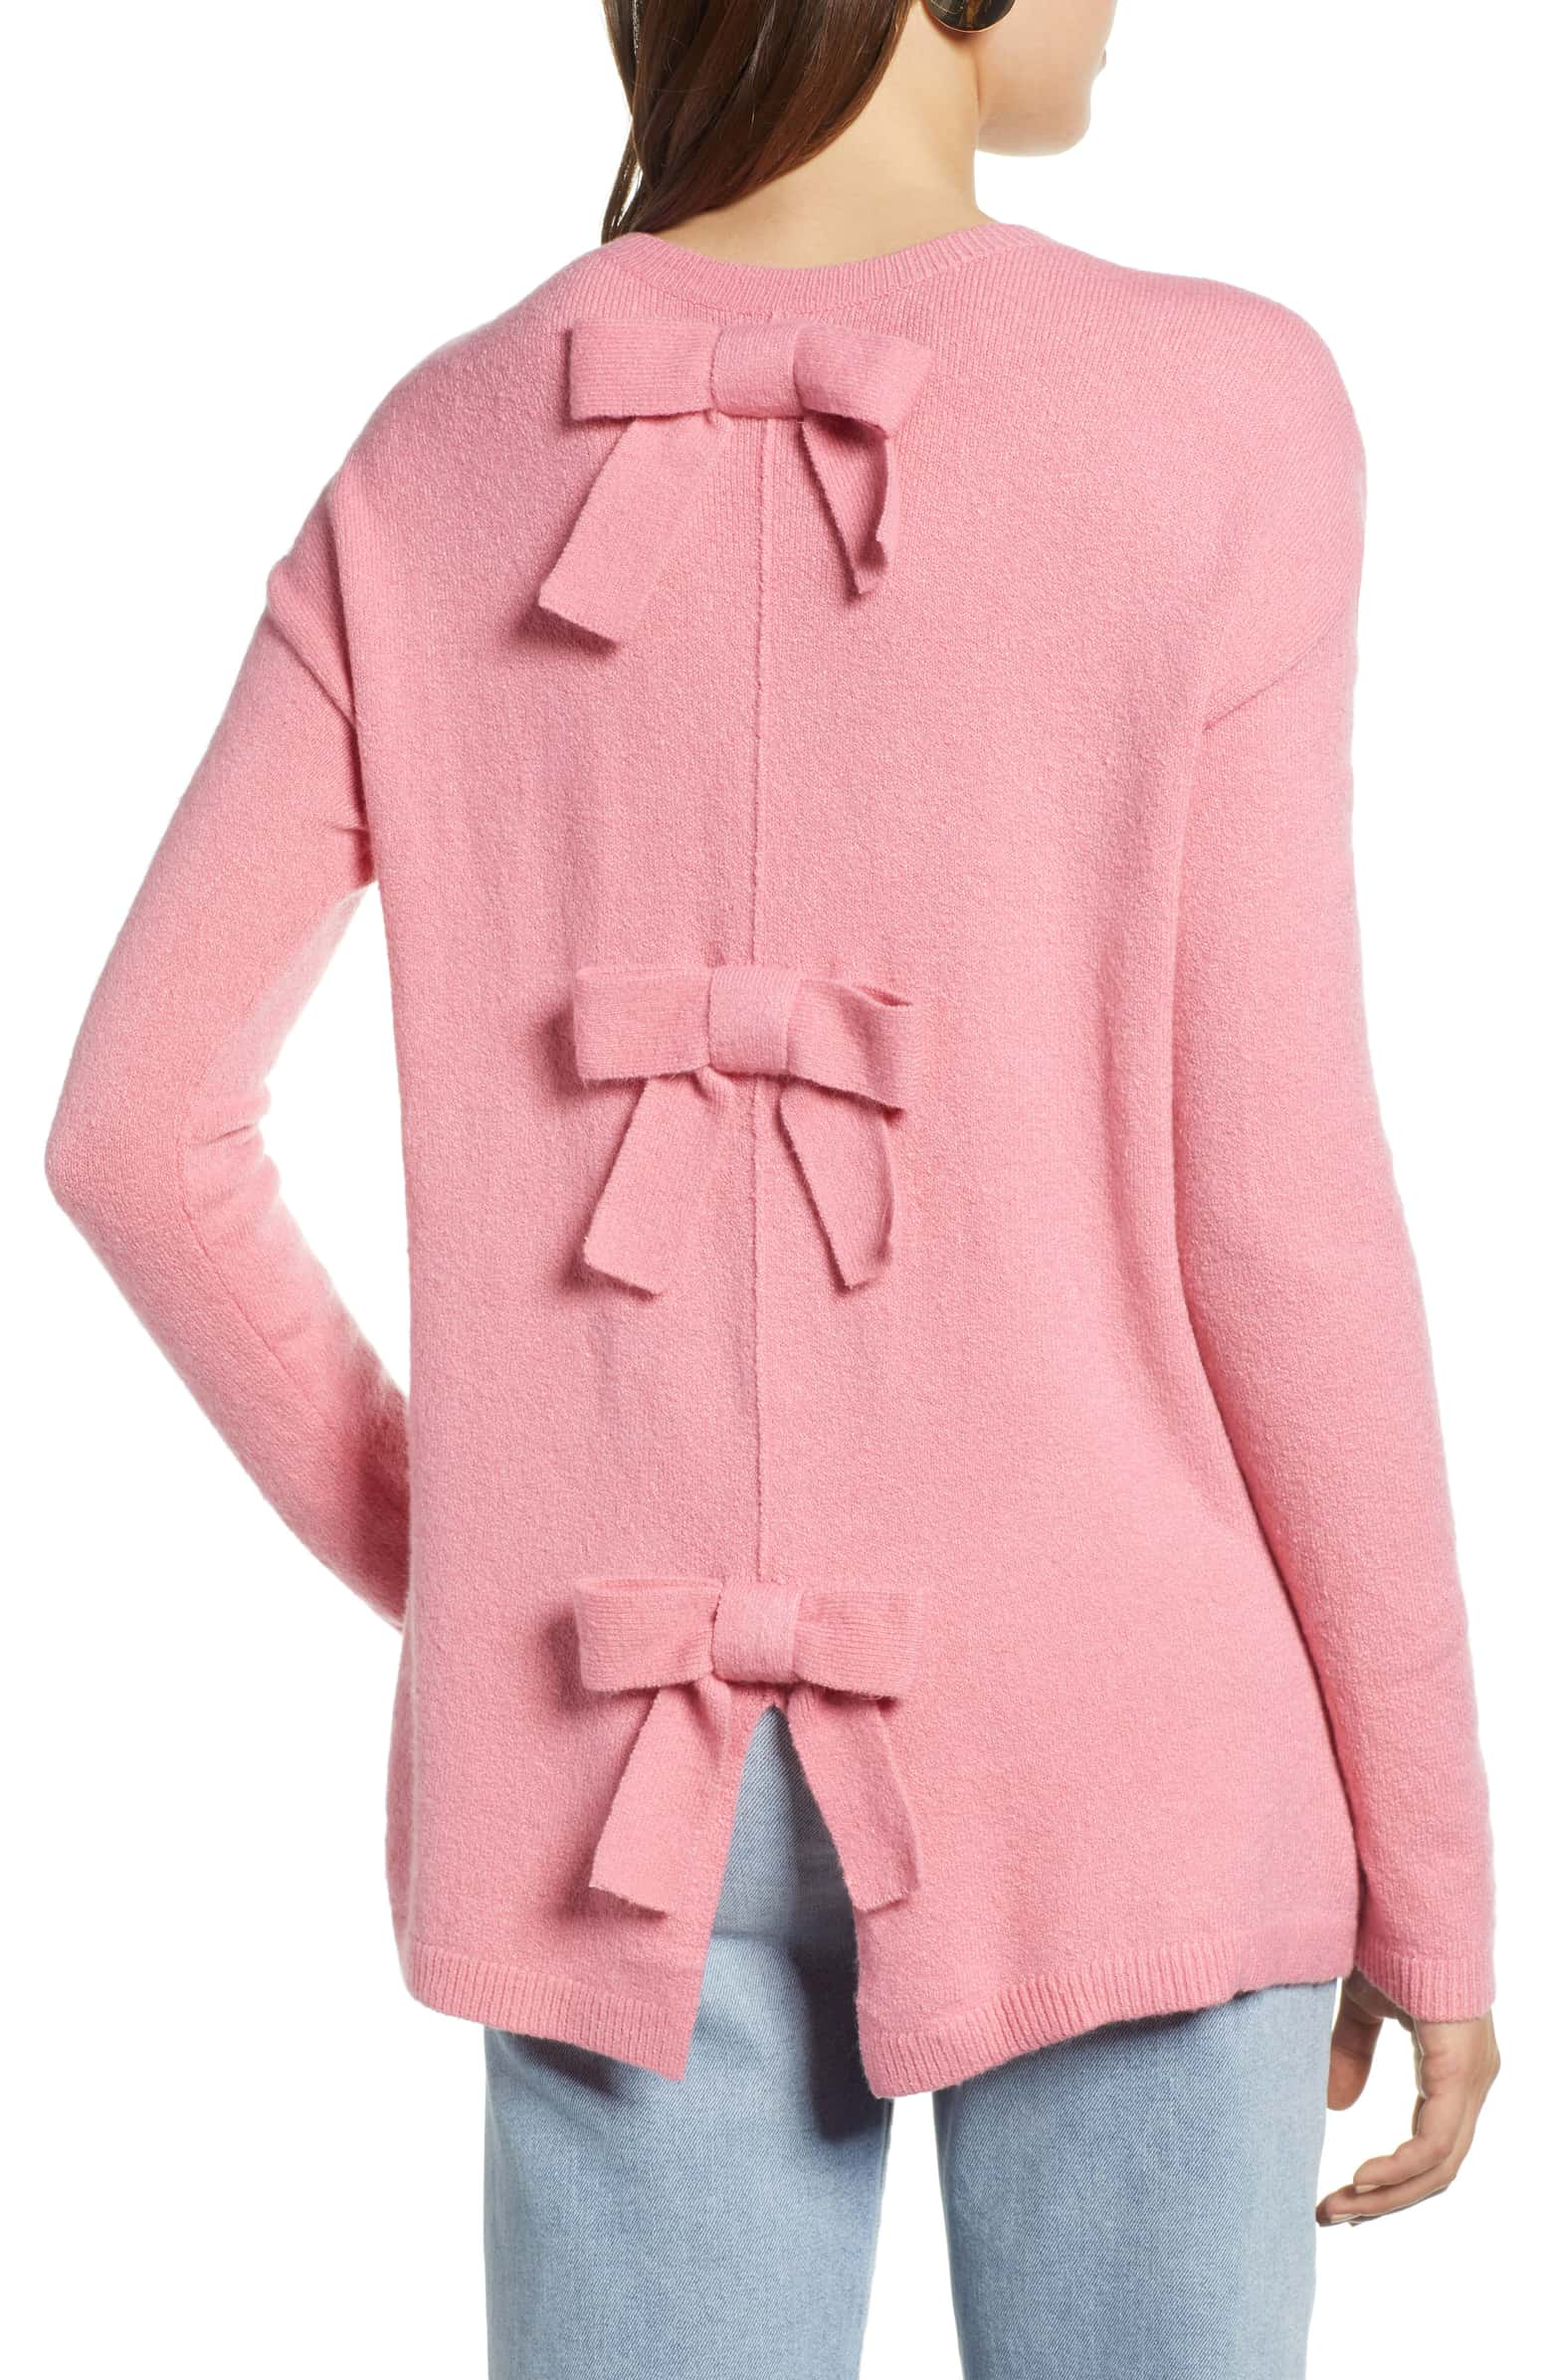 Nordstrom: Halogen Bow Sweater